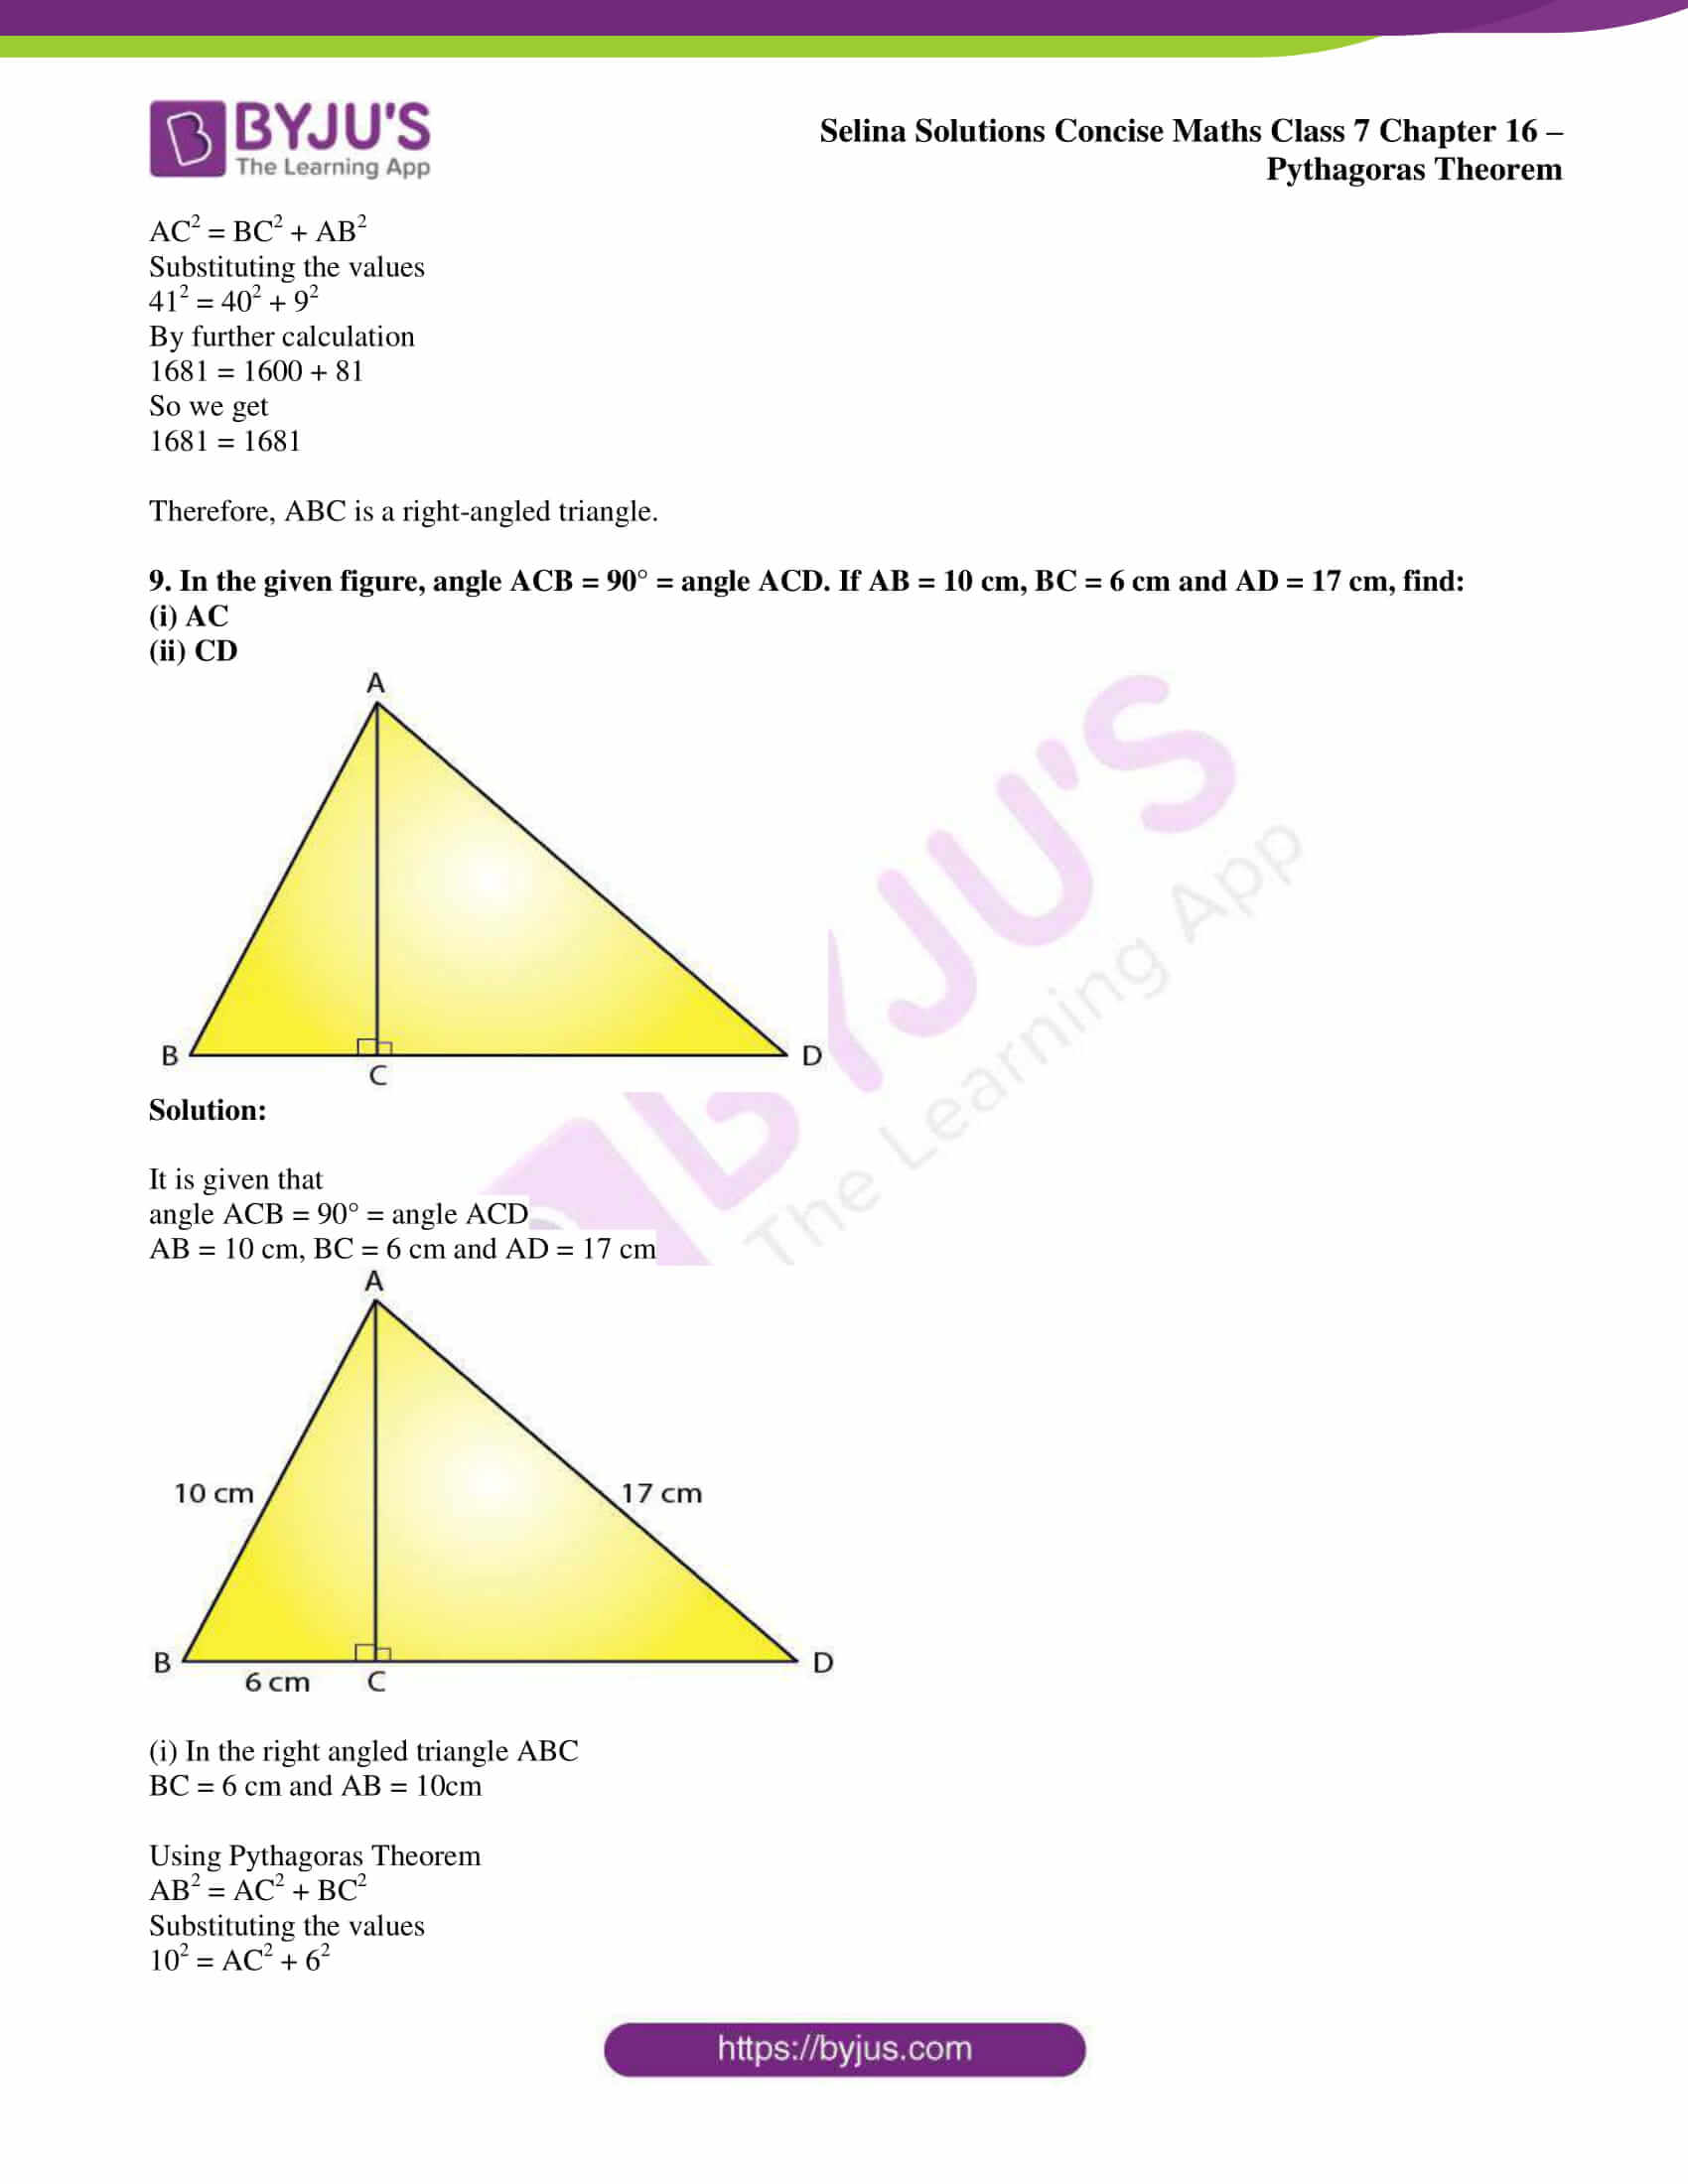 selina sol concise maths class 7 chapter 16 07